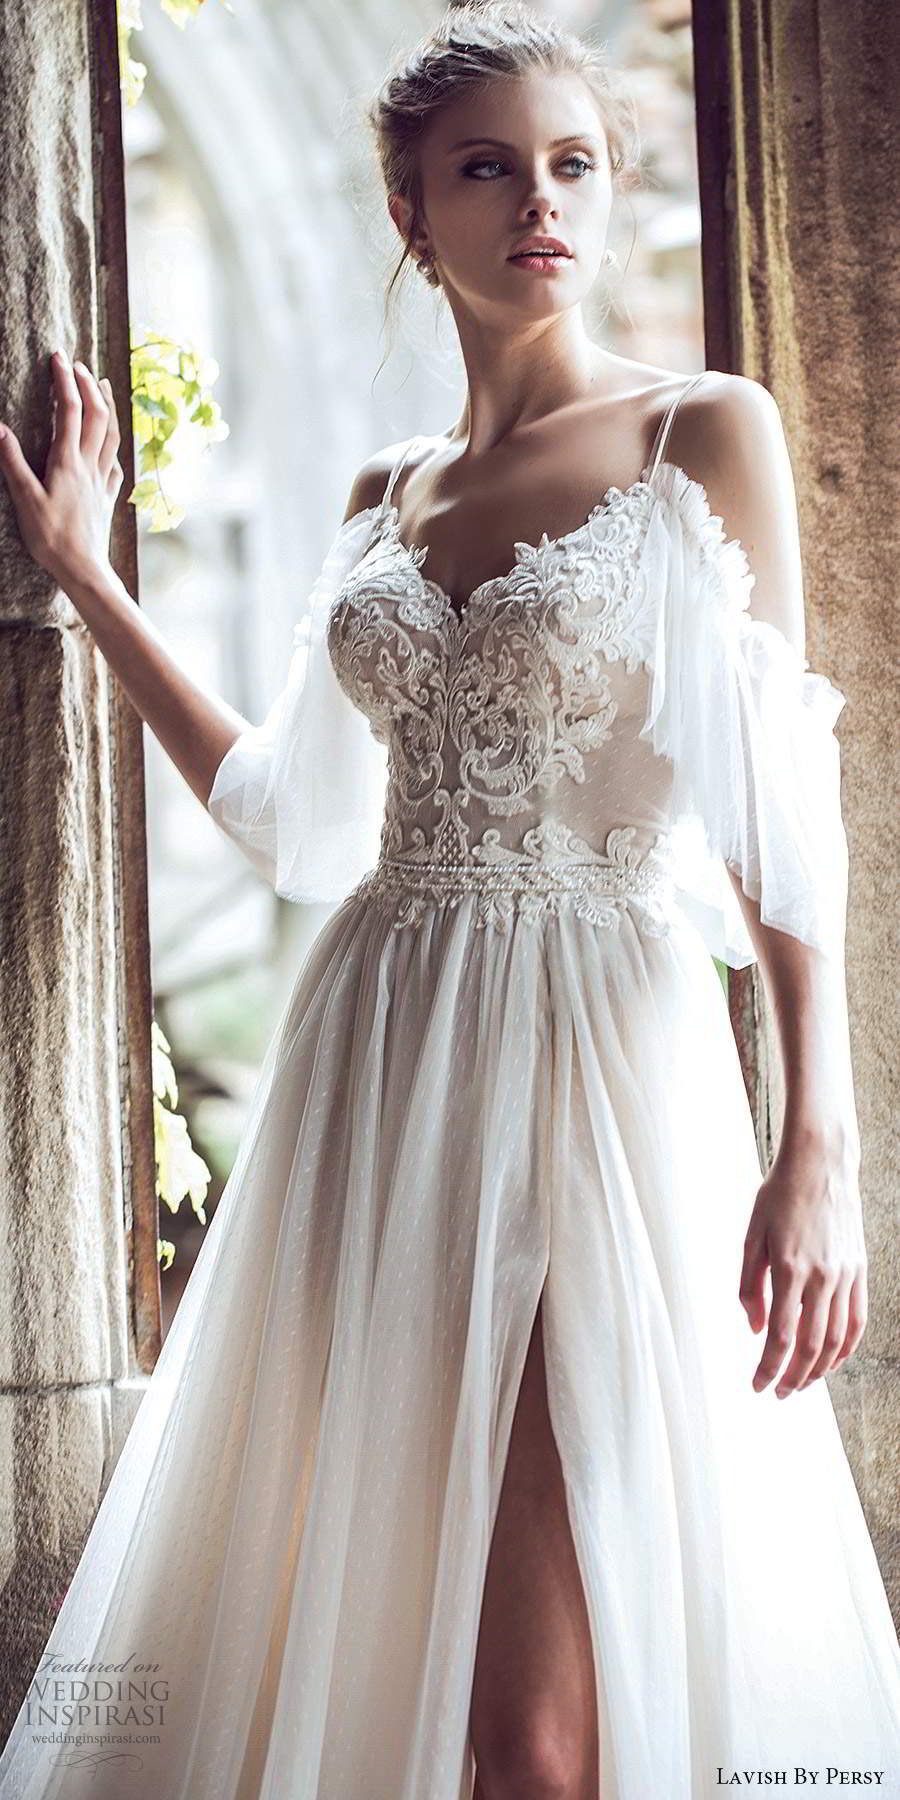 lavish by persy fall 2020 bridal cold shouder half sleeves straps sweetheart neckline embellished bodice a line ball gown wedding dress (4) mv